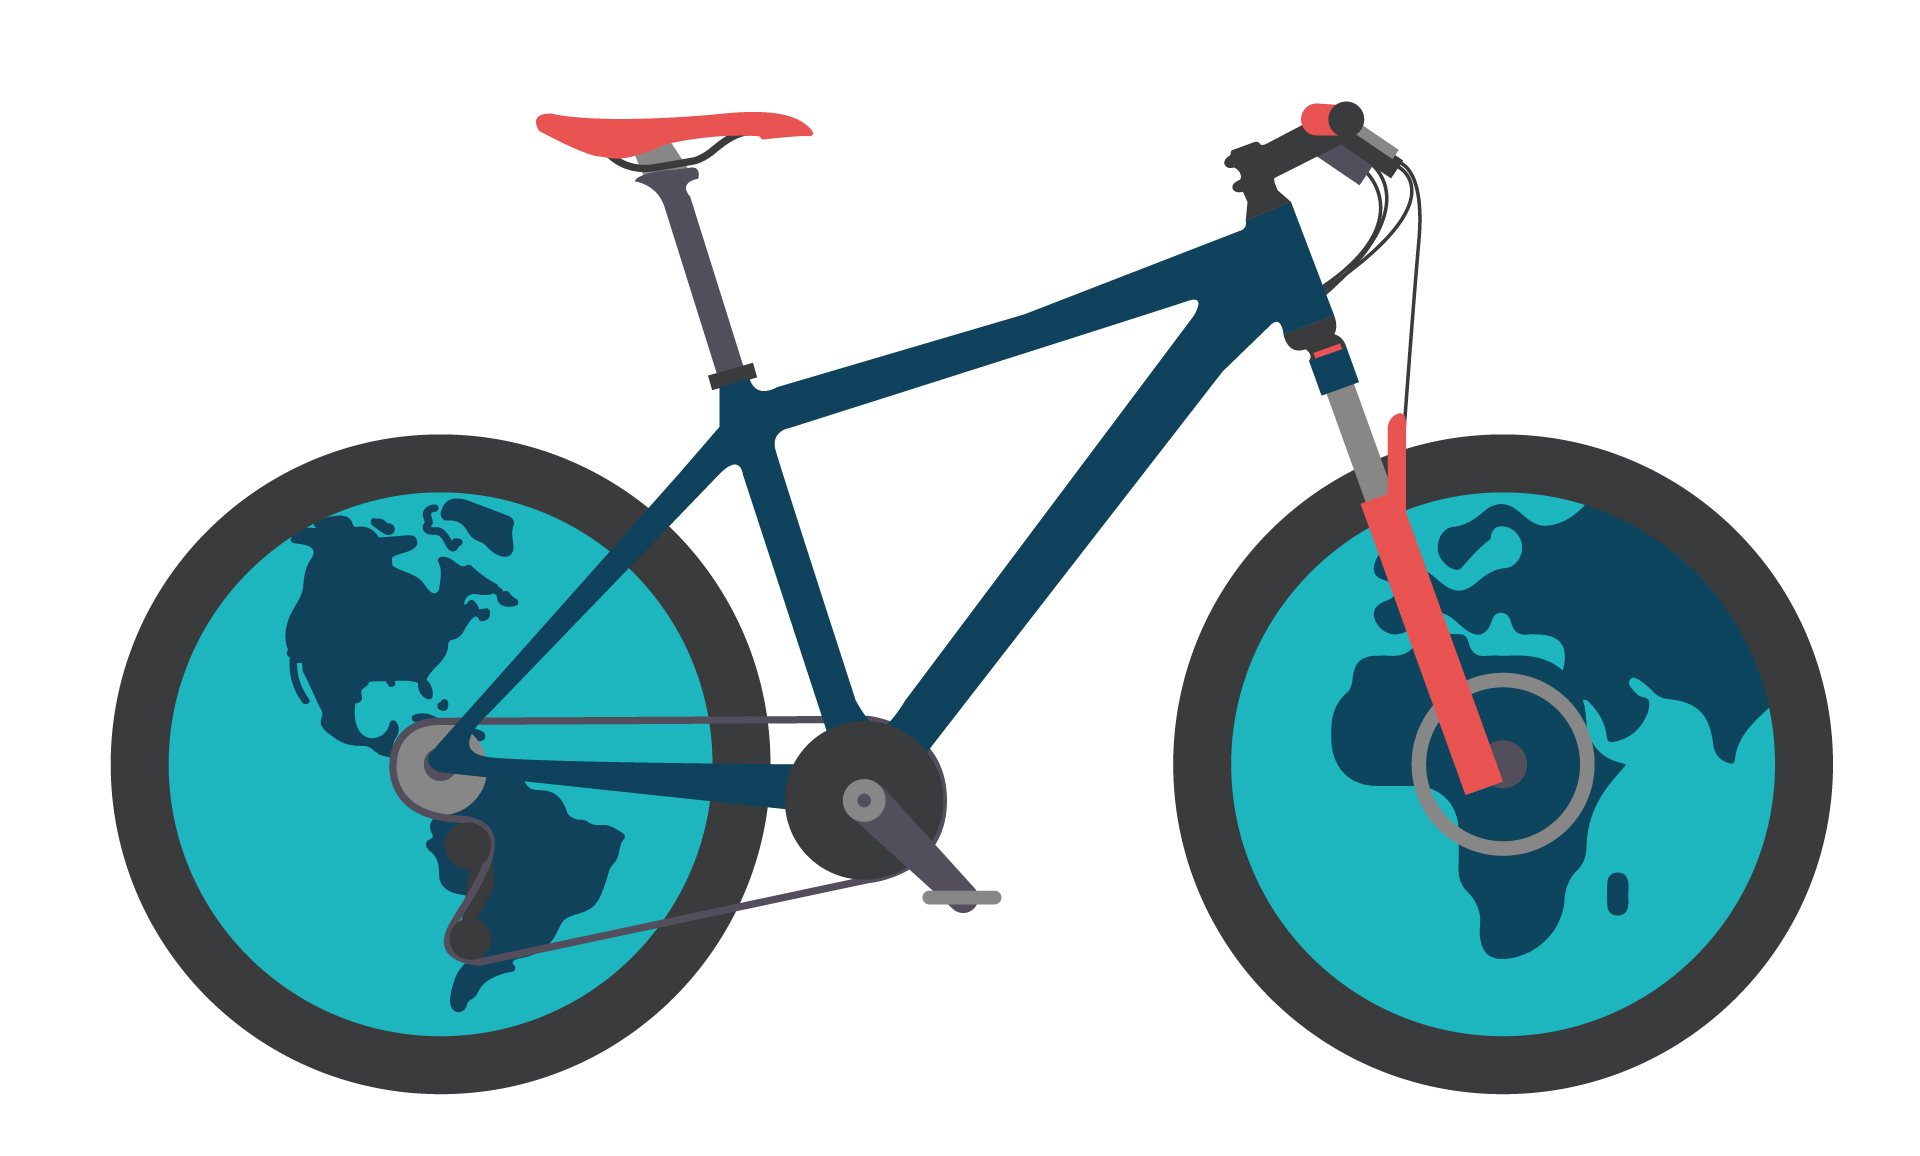 bike illustration with globes for wheels